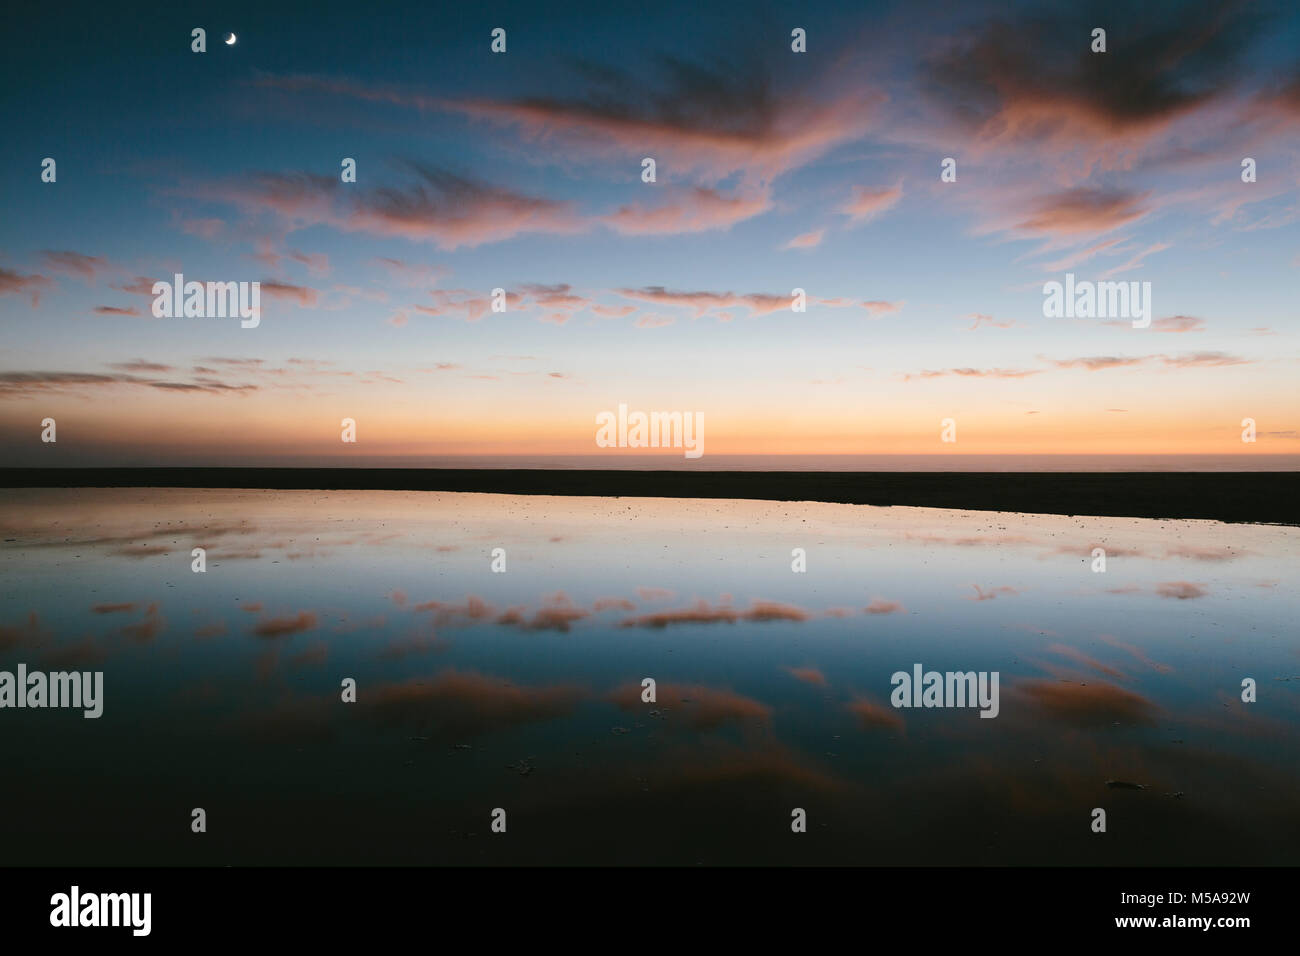 Seascape with dramatic sky reflected in water at dusk. - Stock Image